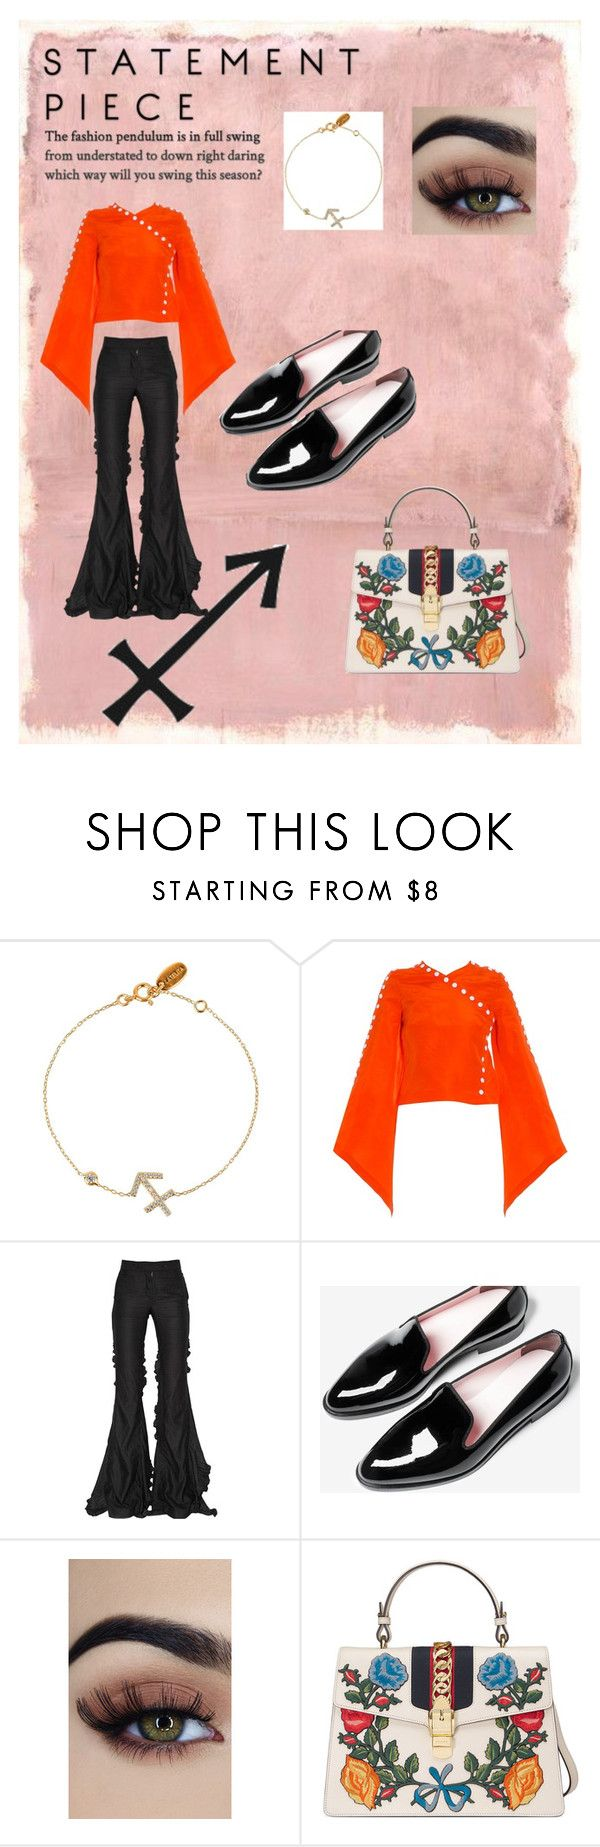 """Sagittarius"" by dmelife ❤ liked on Polyvore featuring Rothko, Rosie Assoulin, Marco de Vincenzo and Gucci"